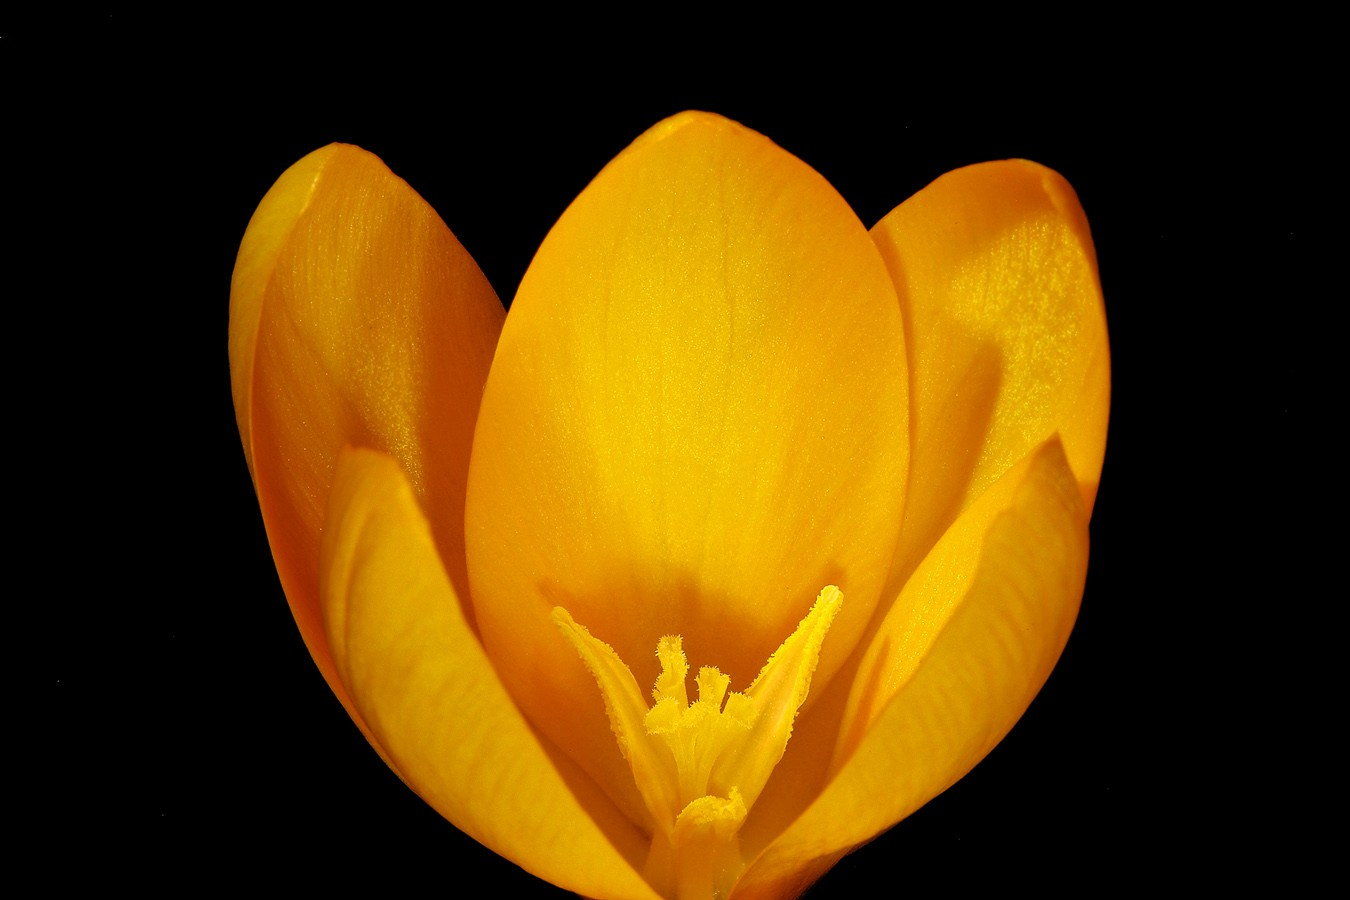 yellow crocus img aw author sava gregory and vere verena